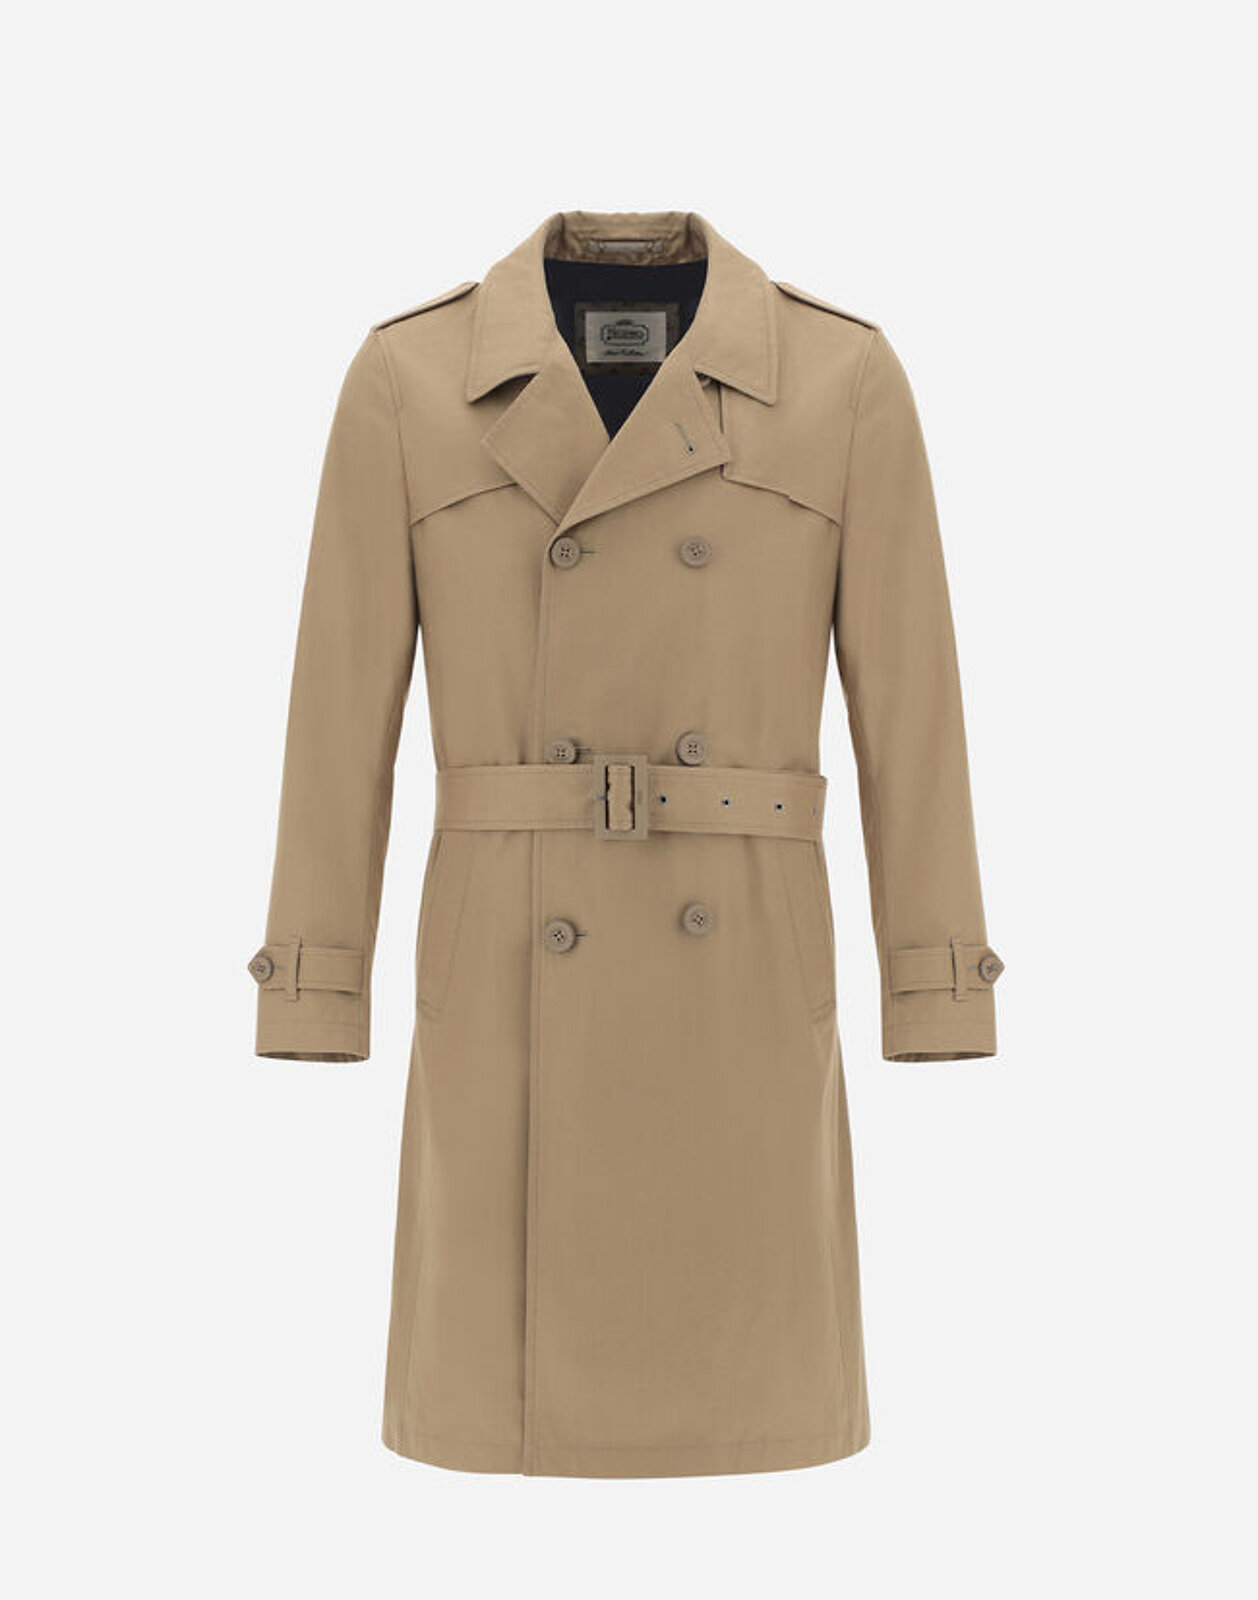 Monogram trench coat - Herno